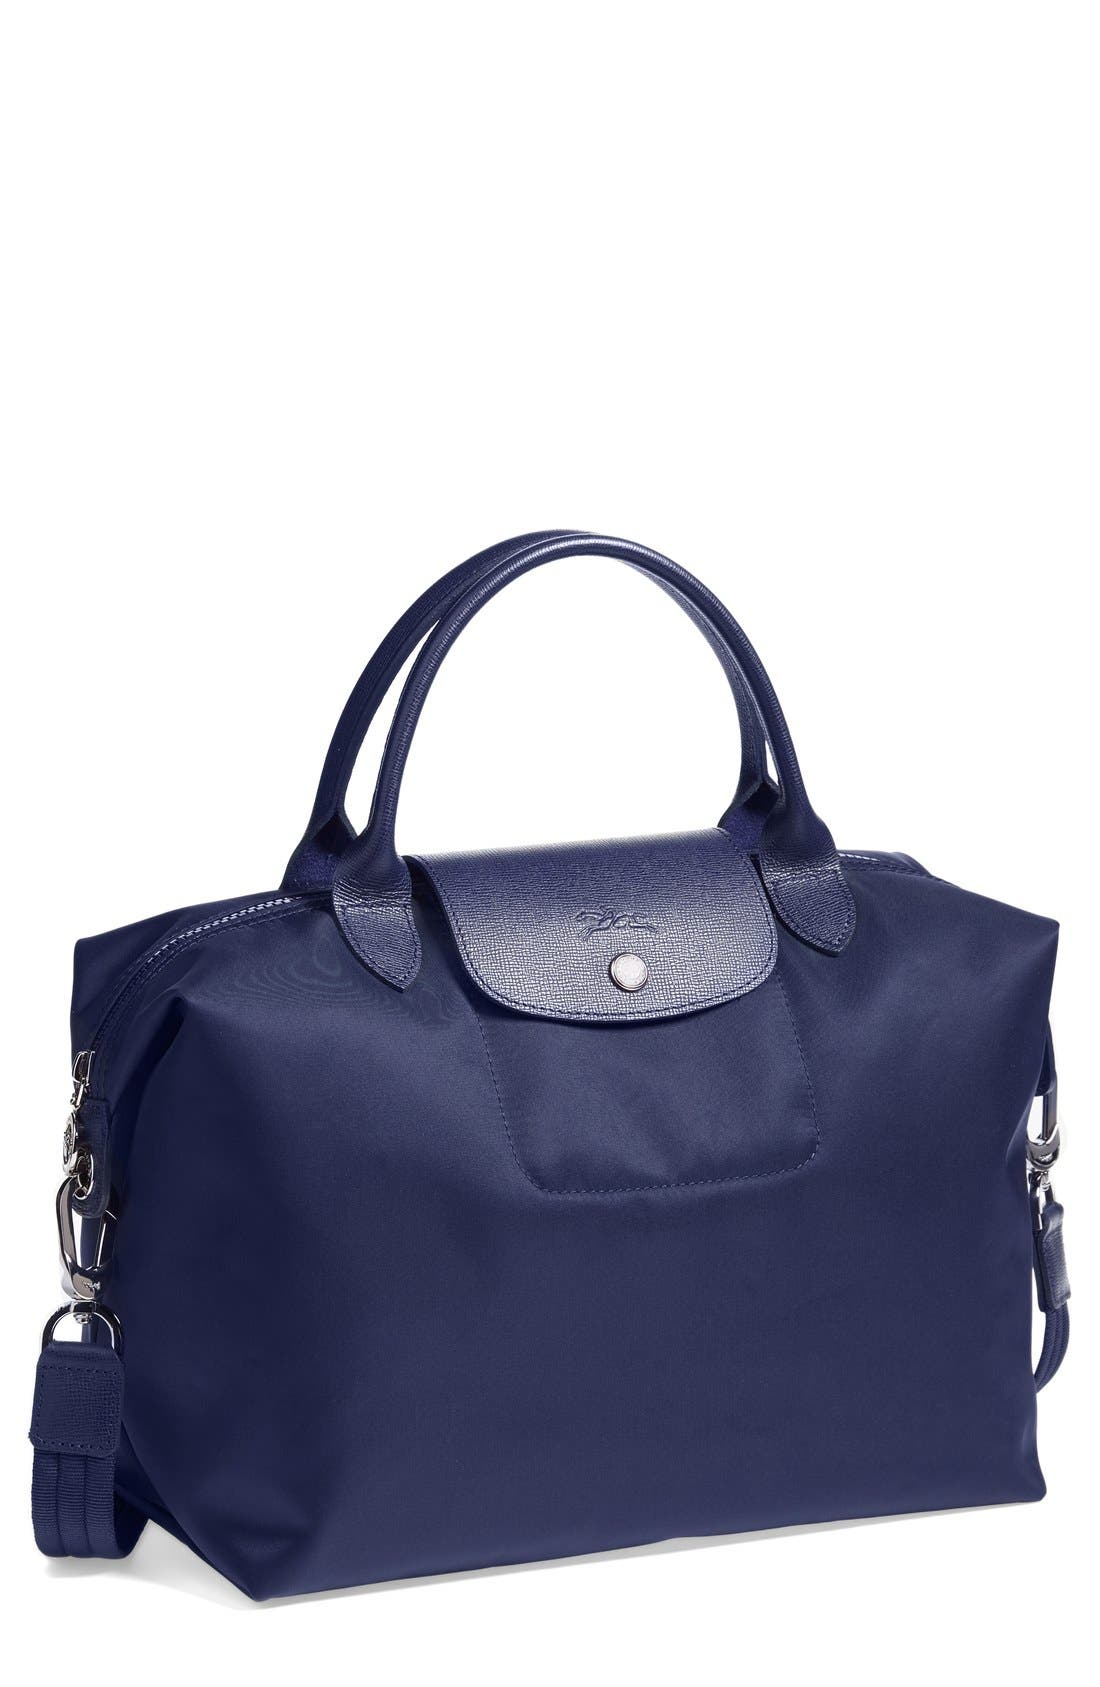 Main Image - Longchamp 'Medium Le Pliage Neo' Nylon Tote